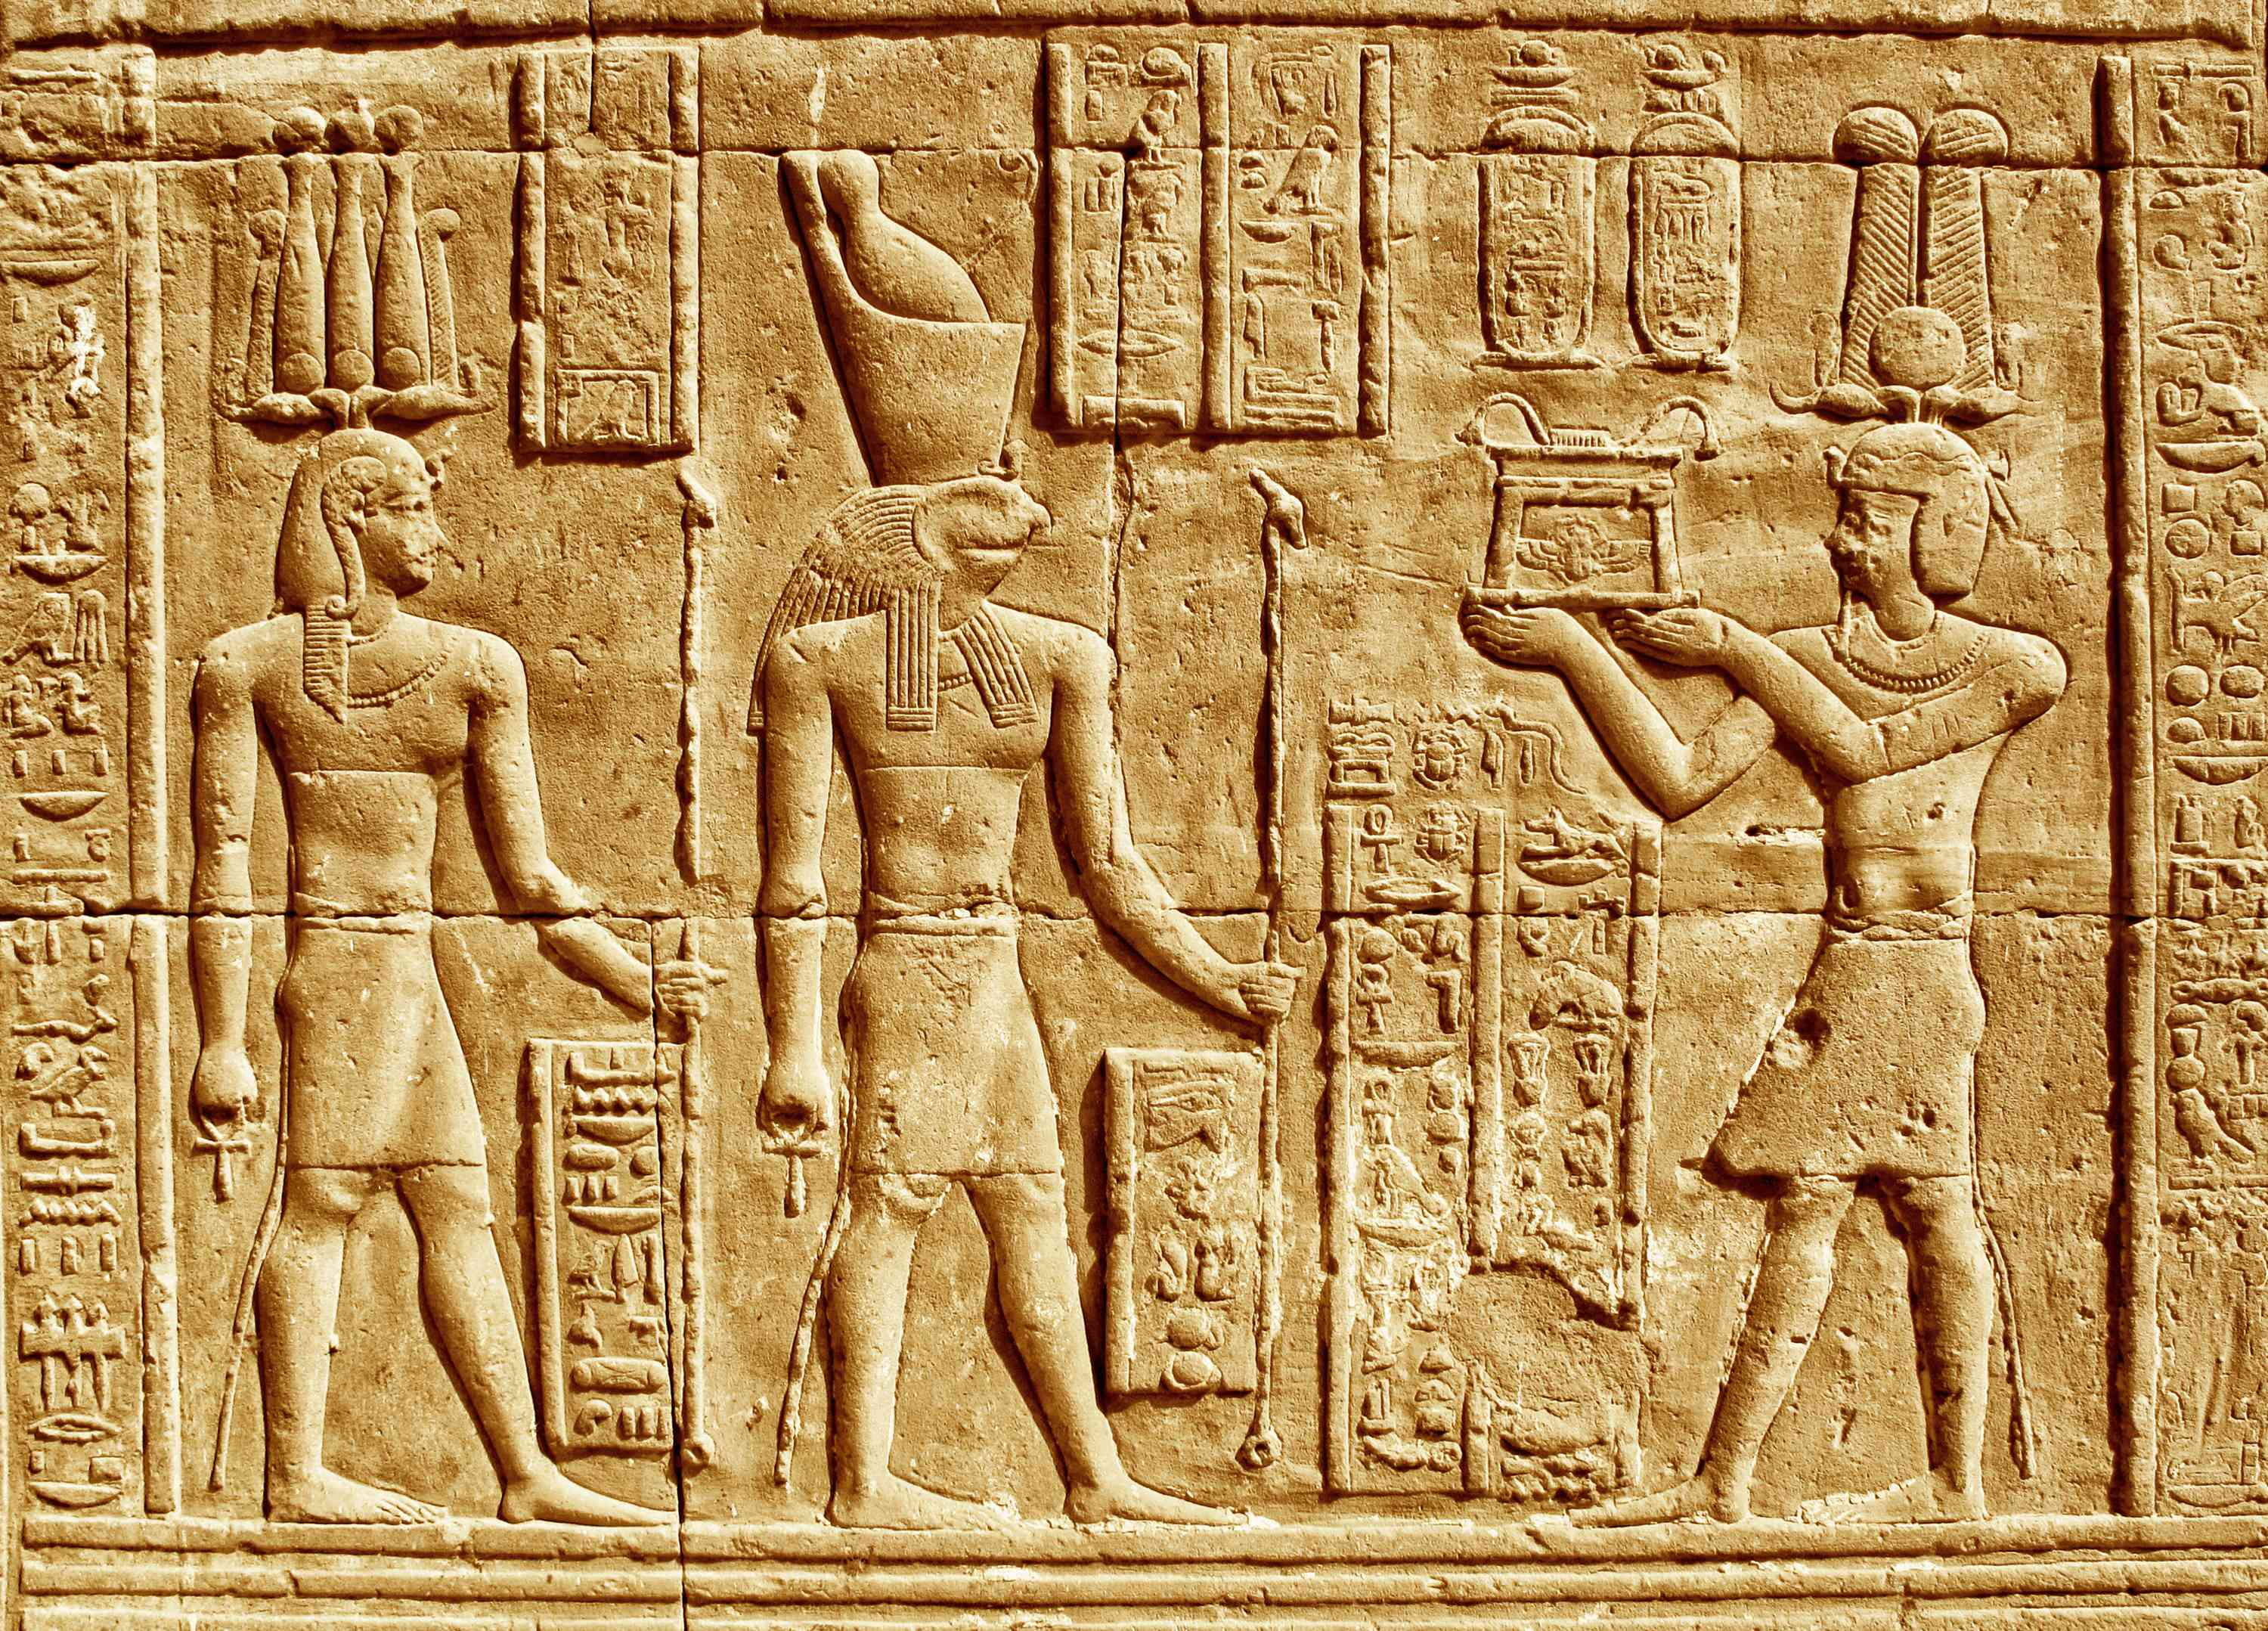 Ancient Hieroglyphics - Egyptian man making an offering to the god Horus.